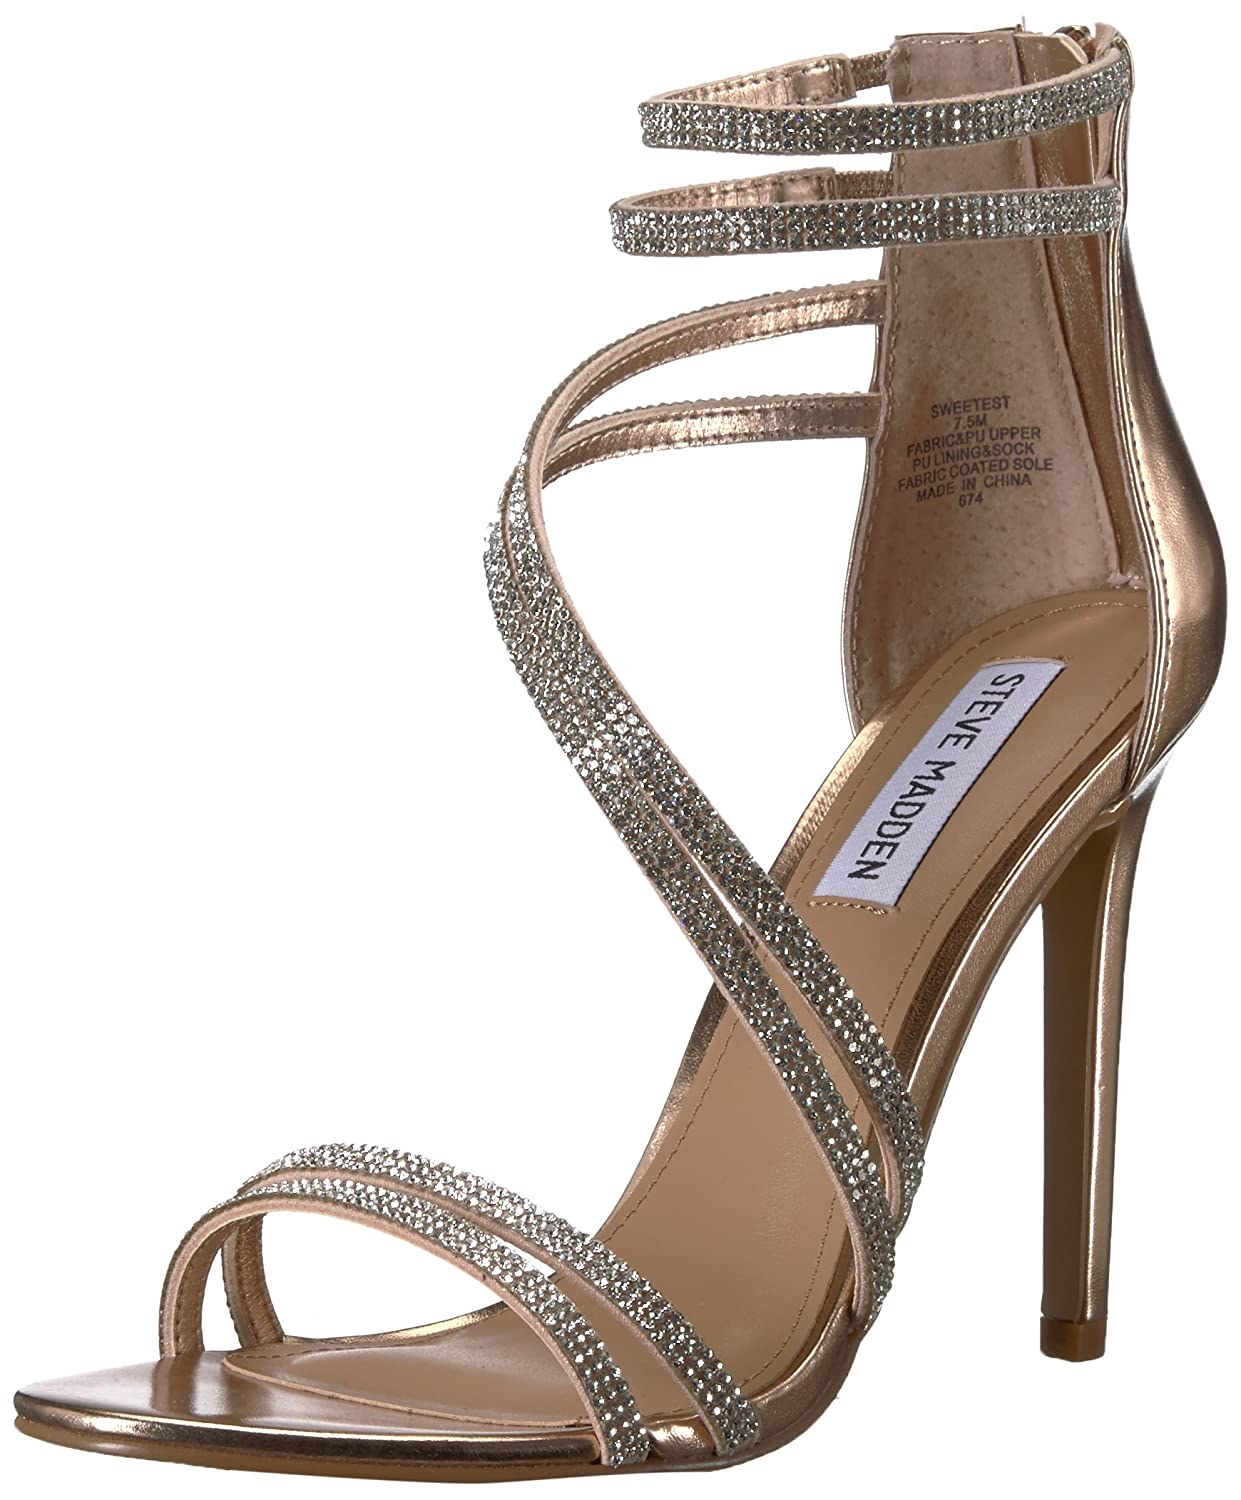 ab888bf0a31 Steve Madden Women's Sweetest Heeled Sandal: Buy Online at Low ...